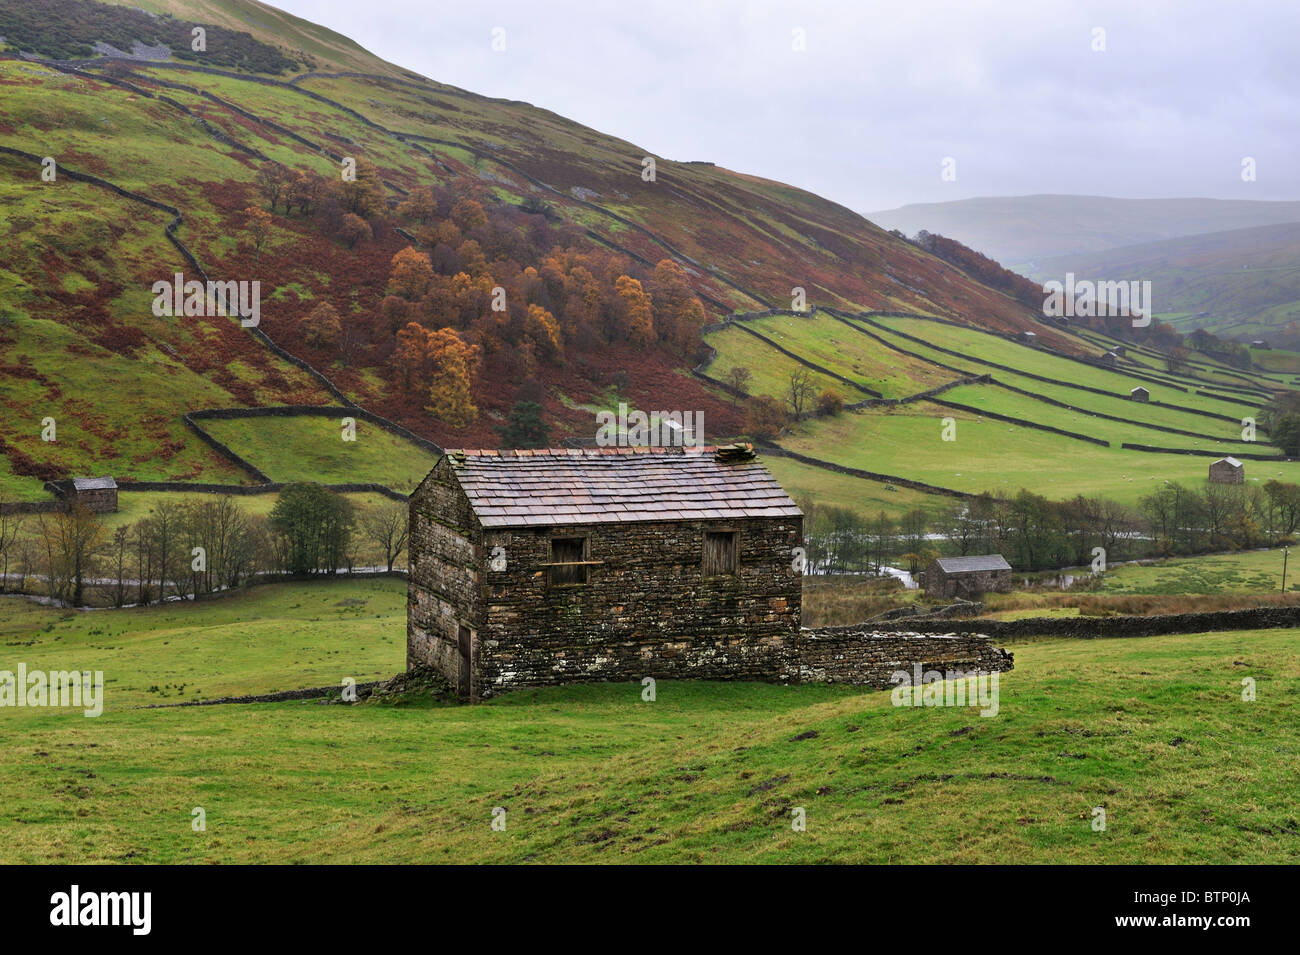 Rainy Autumn day with traditional stone barns at Stonesdale, near Keld, Yorkshire Dales National Park, England. - Stock Image